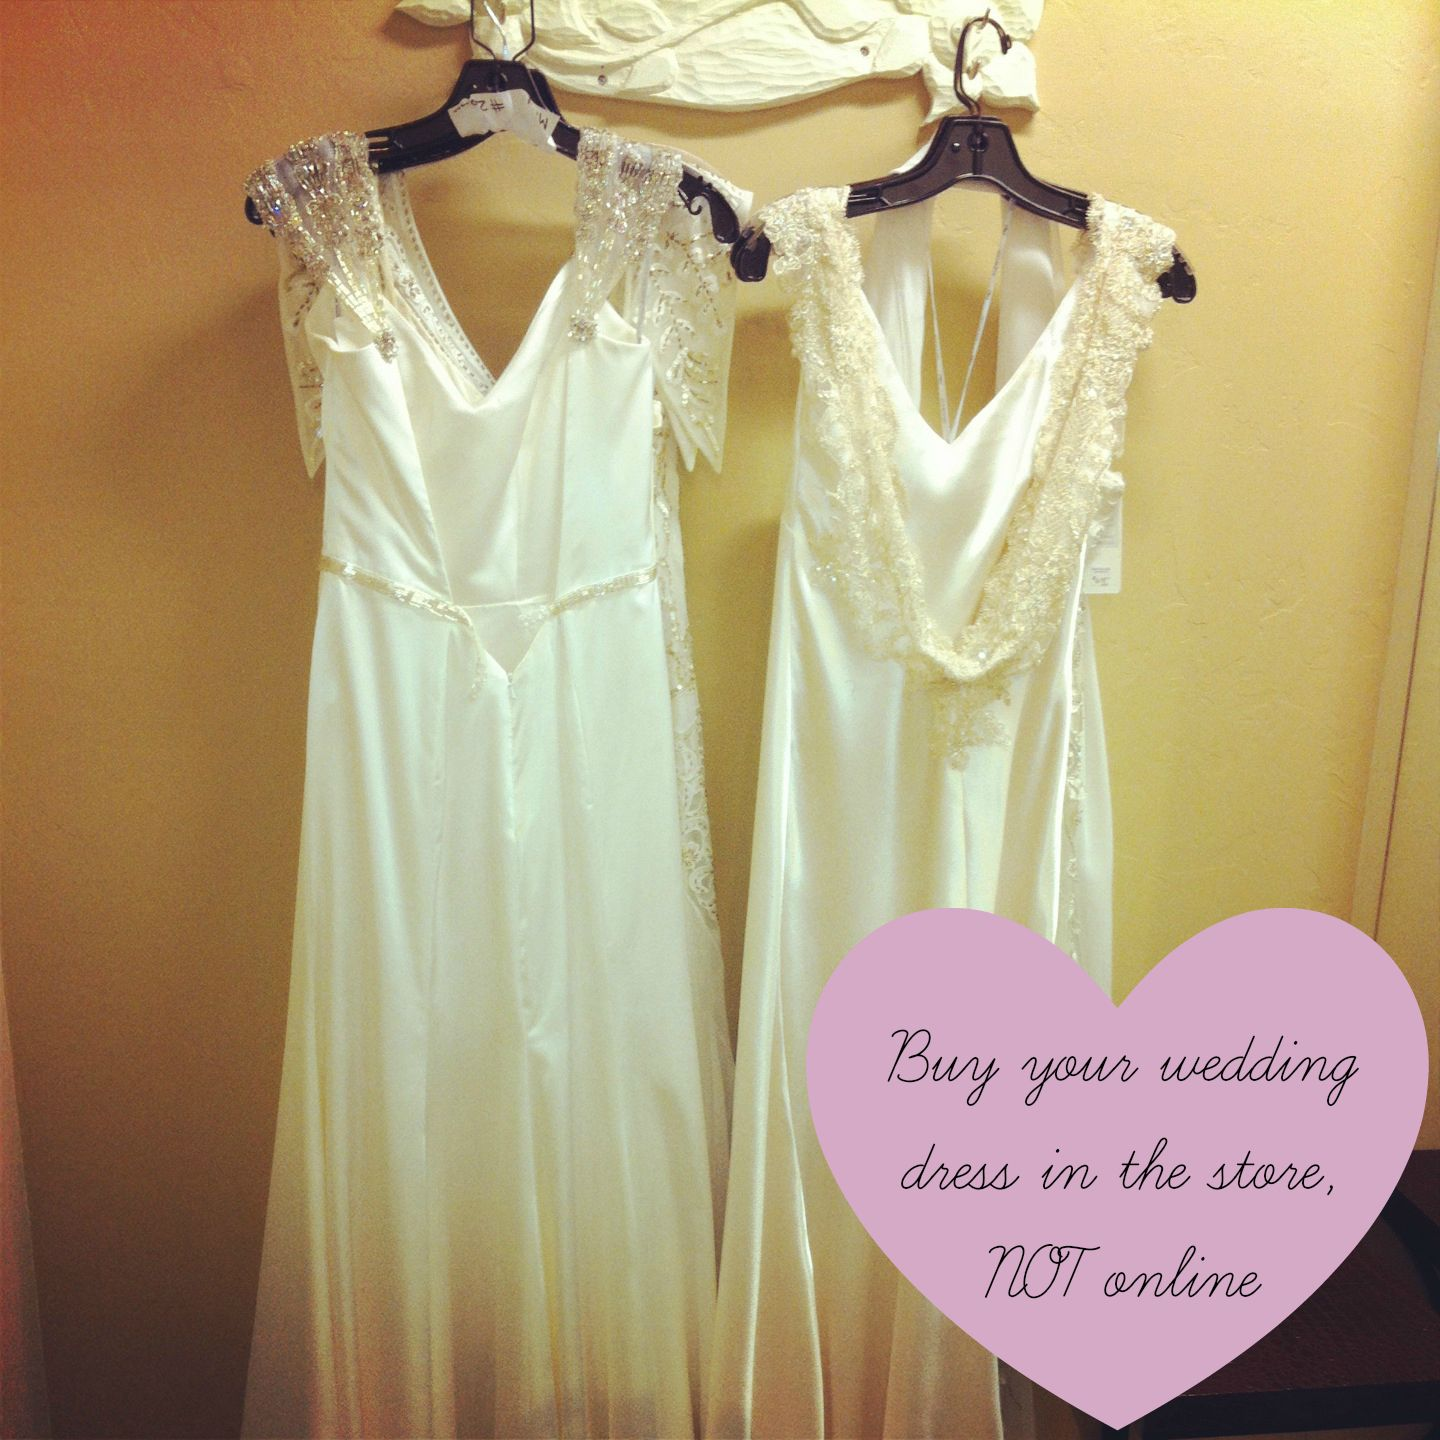 Buy your wedding dress in a store, not online.